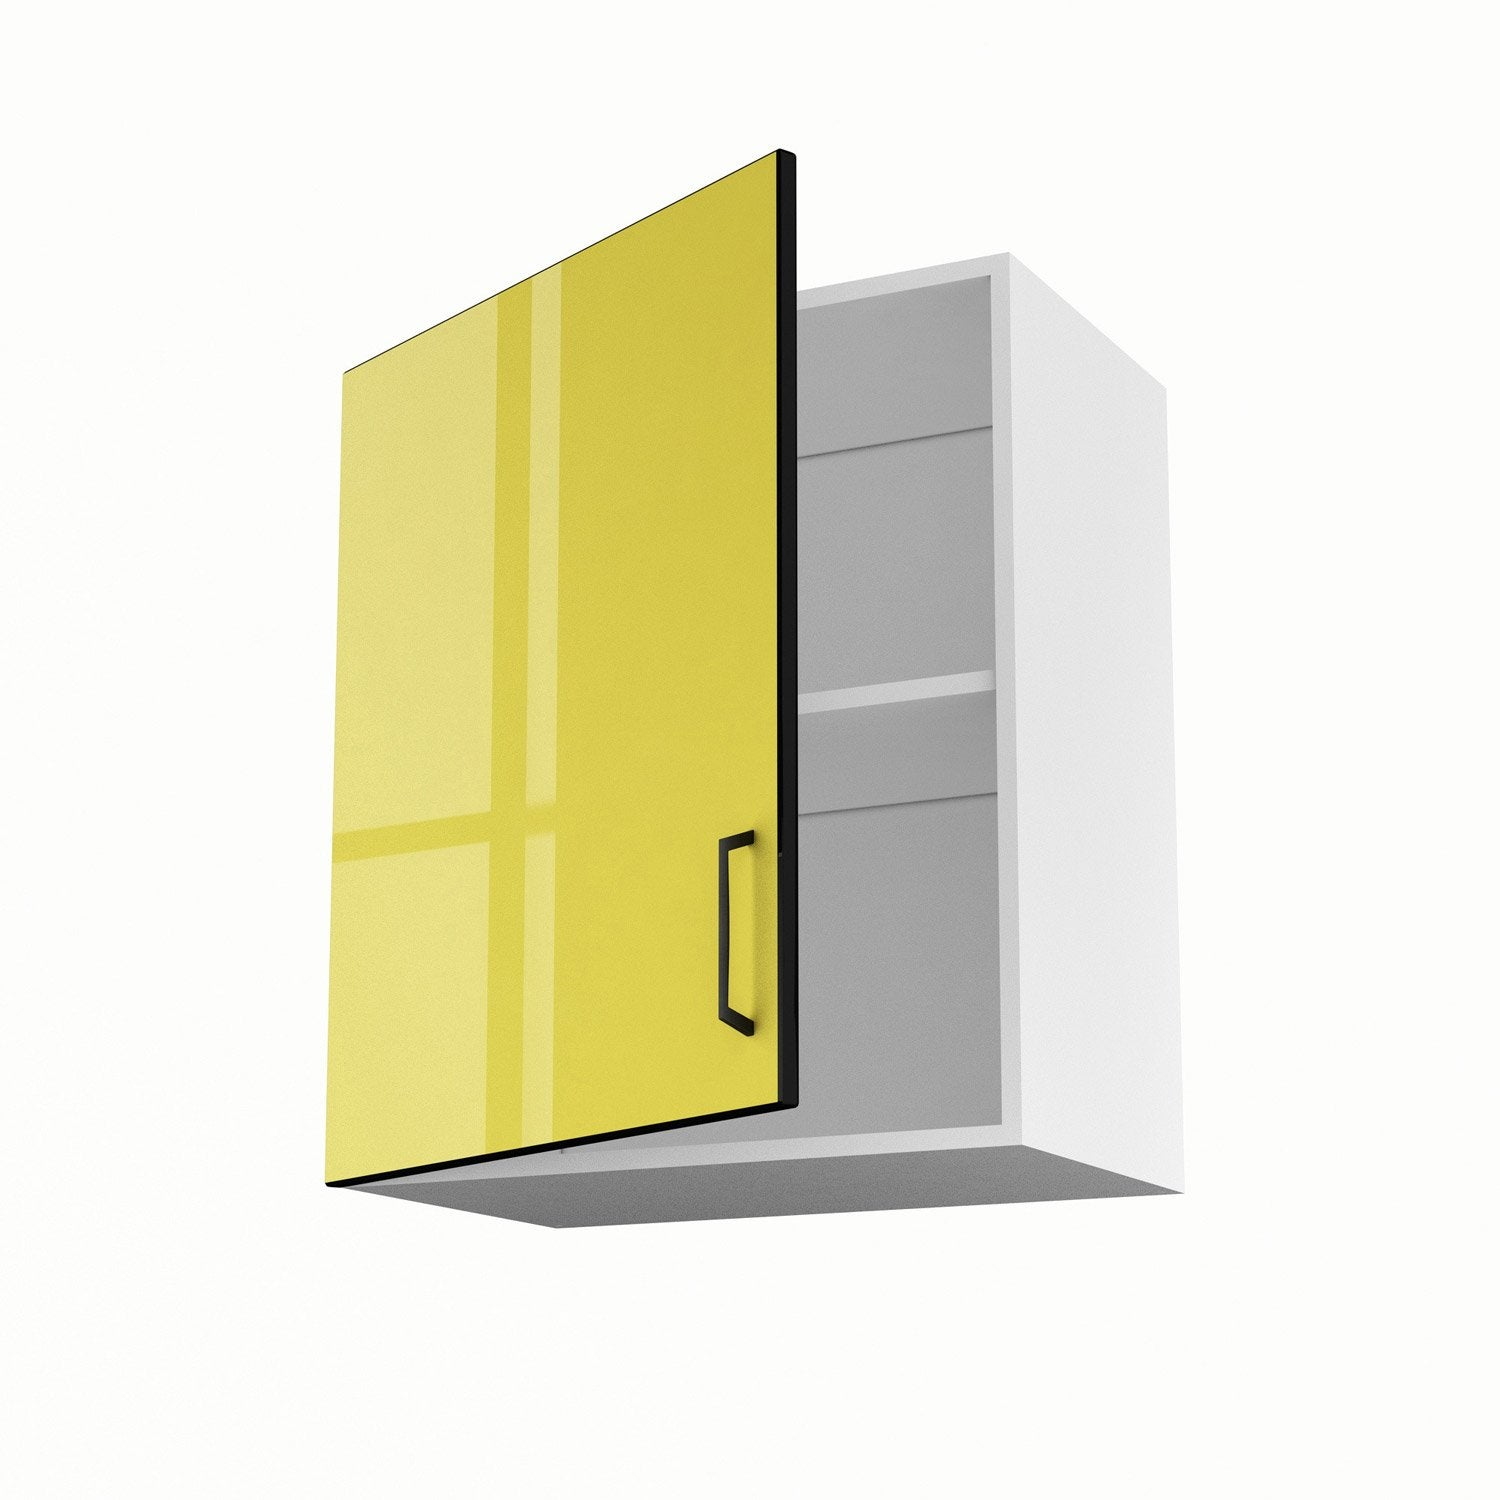 Meuble de cuisine haut jaune 1 porte pop h70xl60xp35 cm for Porte 60 x 60